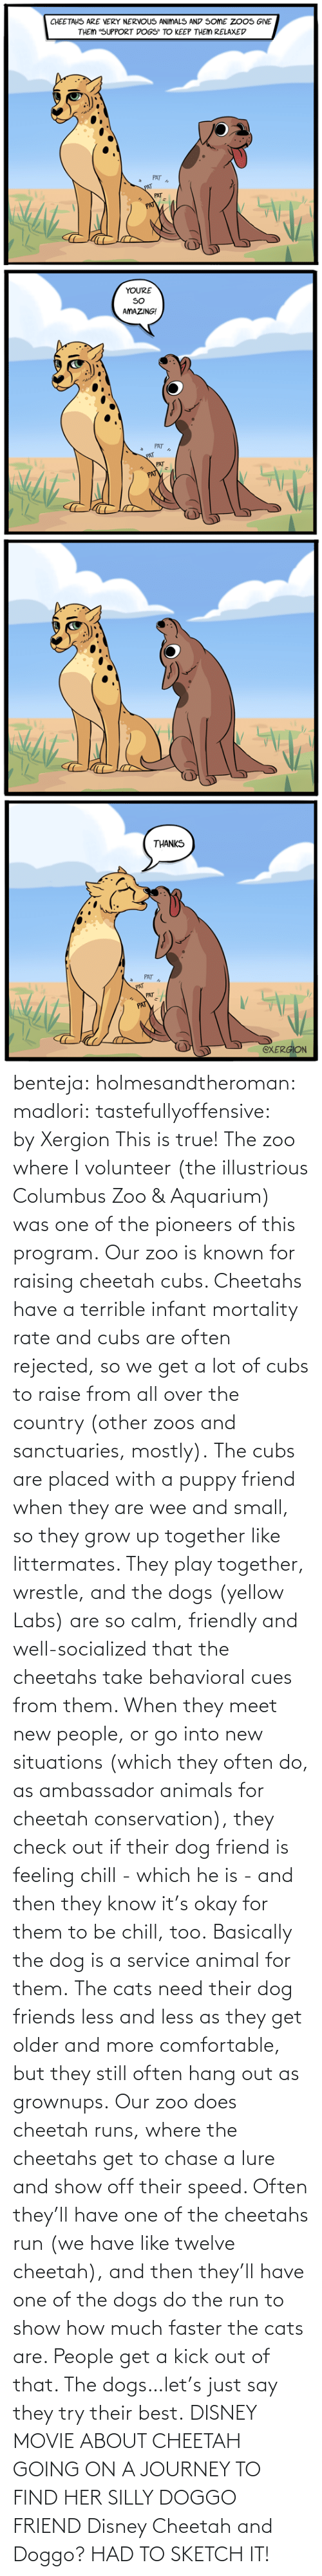 service: benteja:  holmesandtheroman:  madlori:  tastefullyoffensive: by Xergion This is true! The zoo where I volunteer (the illustrious Columbus Zoo & Aquarium) was one of the pioneers of this program. Our zoo is known for raising cheetah cubs. Cheetahs have a terrible infant mortality rate and cubs are often rejected, so we get a lot of cubs to raise from all over the country (other zoos and sanctuaries, mostly). The cubs are placed with a puppy friend when they are wee and small, so they grow up together like littermates. They play together, wrestle, and the dogs (yellow Labs) are so calm, friendly and well-socialized that the cheetahs take behavioral cues from them. When they meet new people, or go into new situations (which they often do, as ambassador animals for cheetah conservation), they check out if their dog friend is feeling chill - which he is - and then they know it's okay for them to be chill, too. Basically the dog is a service animal for them. The cats need their dog friends less and less as they get older and more comfortable, but they still often hang out as grownups. Our zoo does cheetah runs, where the cheetahs get to chase a lure and show off their speed. Often they'll have one of the cheetahs run (we have like twelve cheetah), and then they'll have one of the dogs do the run to show how much faster the cats are. People get a kick out of that. The dogs…let's just say they try their best.   DISNEY MOVIE ABOUT CHEETAH GOING ON A JOURNEY TO FIND HER SILLY DOGGO FRIEND  Disney Cheetah and Doggo? HAD TO SKETCH IT!